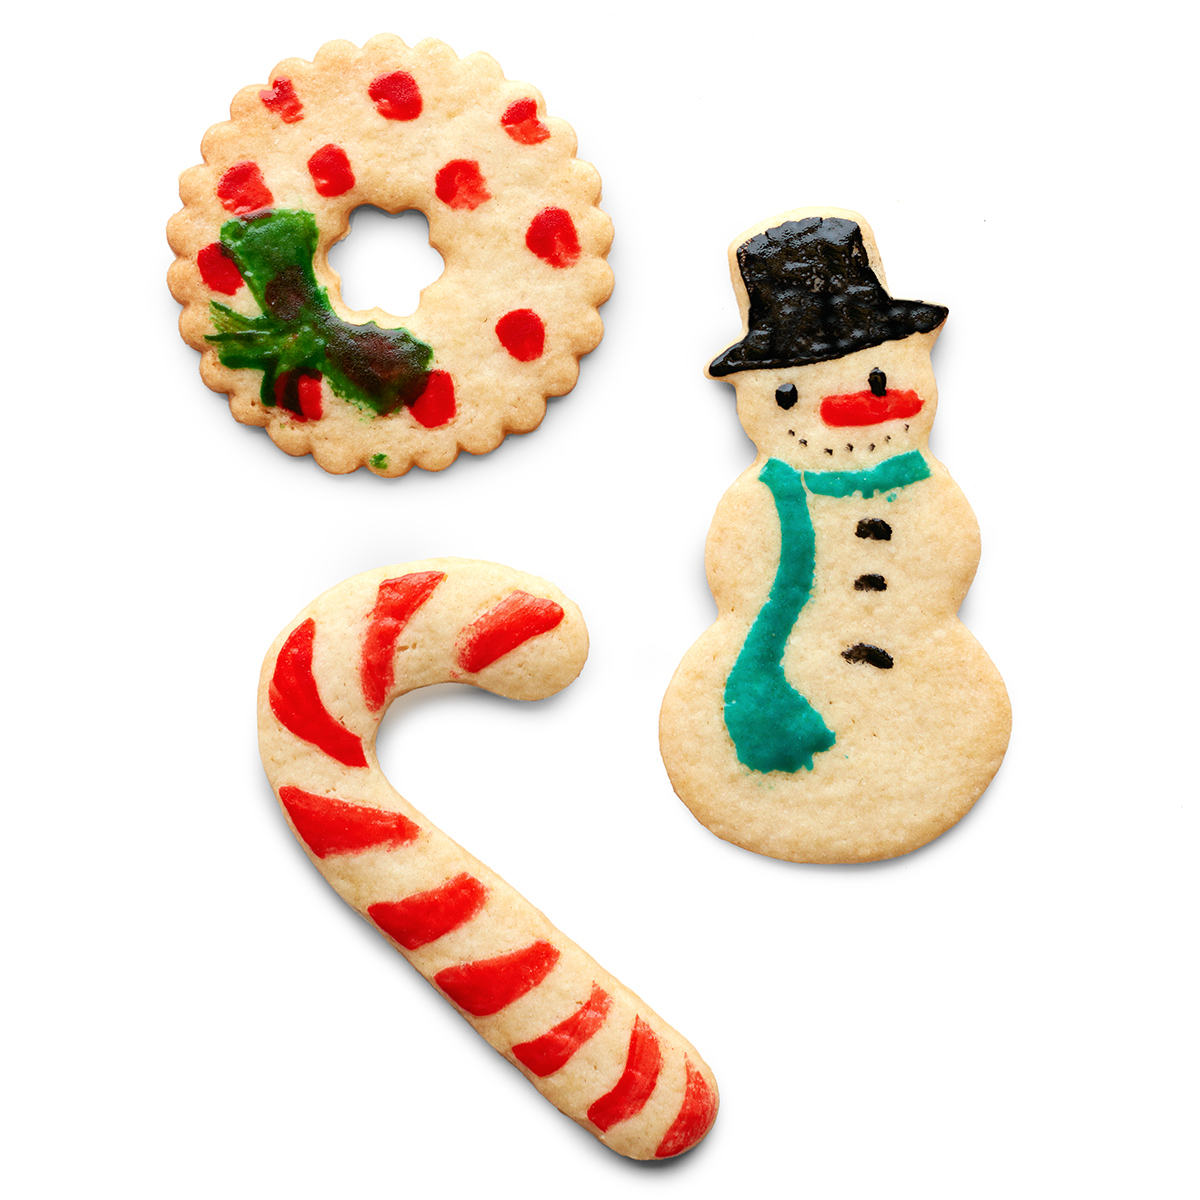 Soft Sugar Cookies with Edible Paint